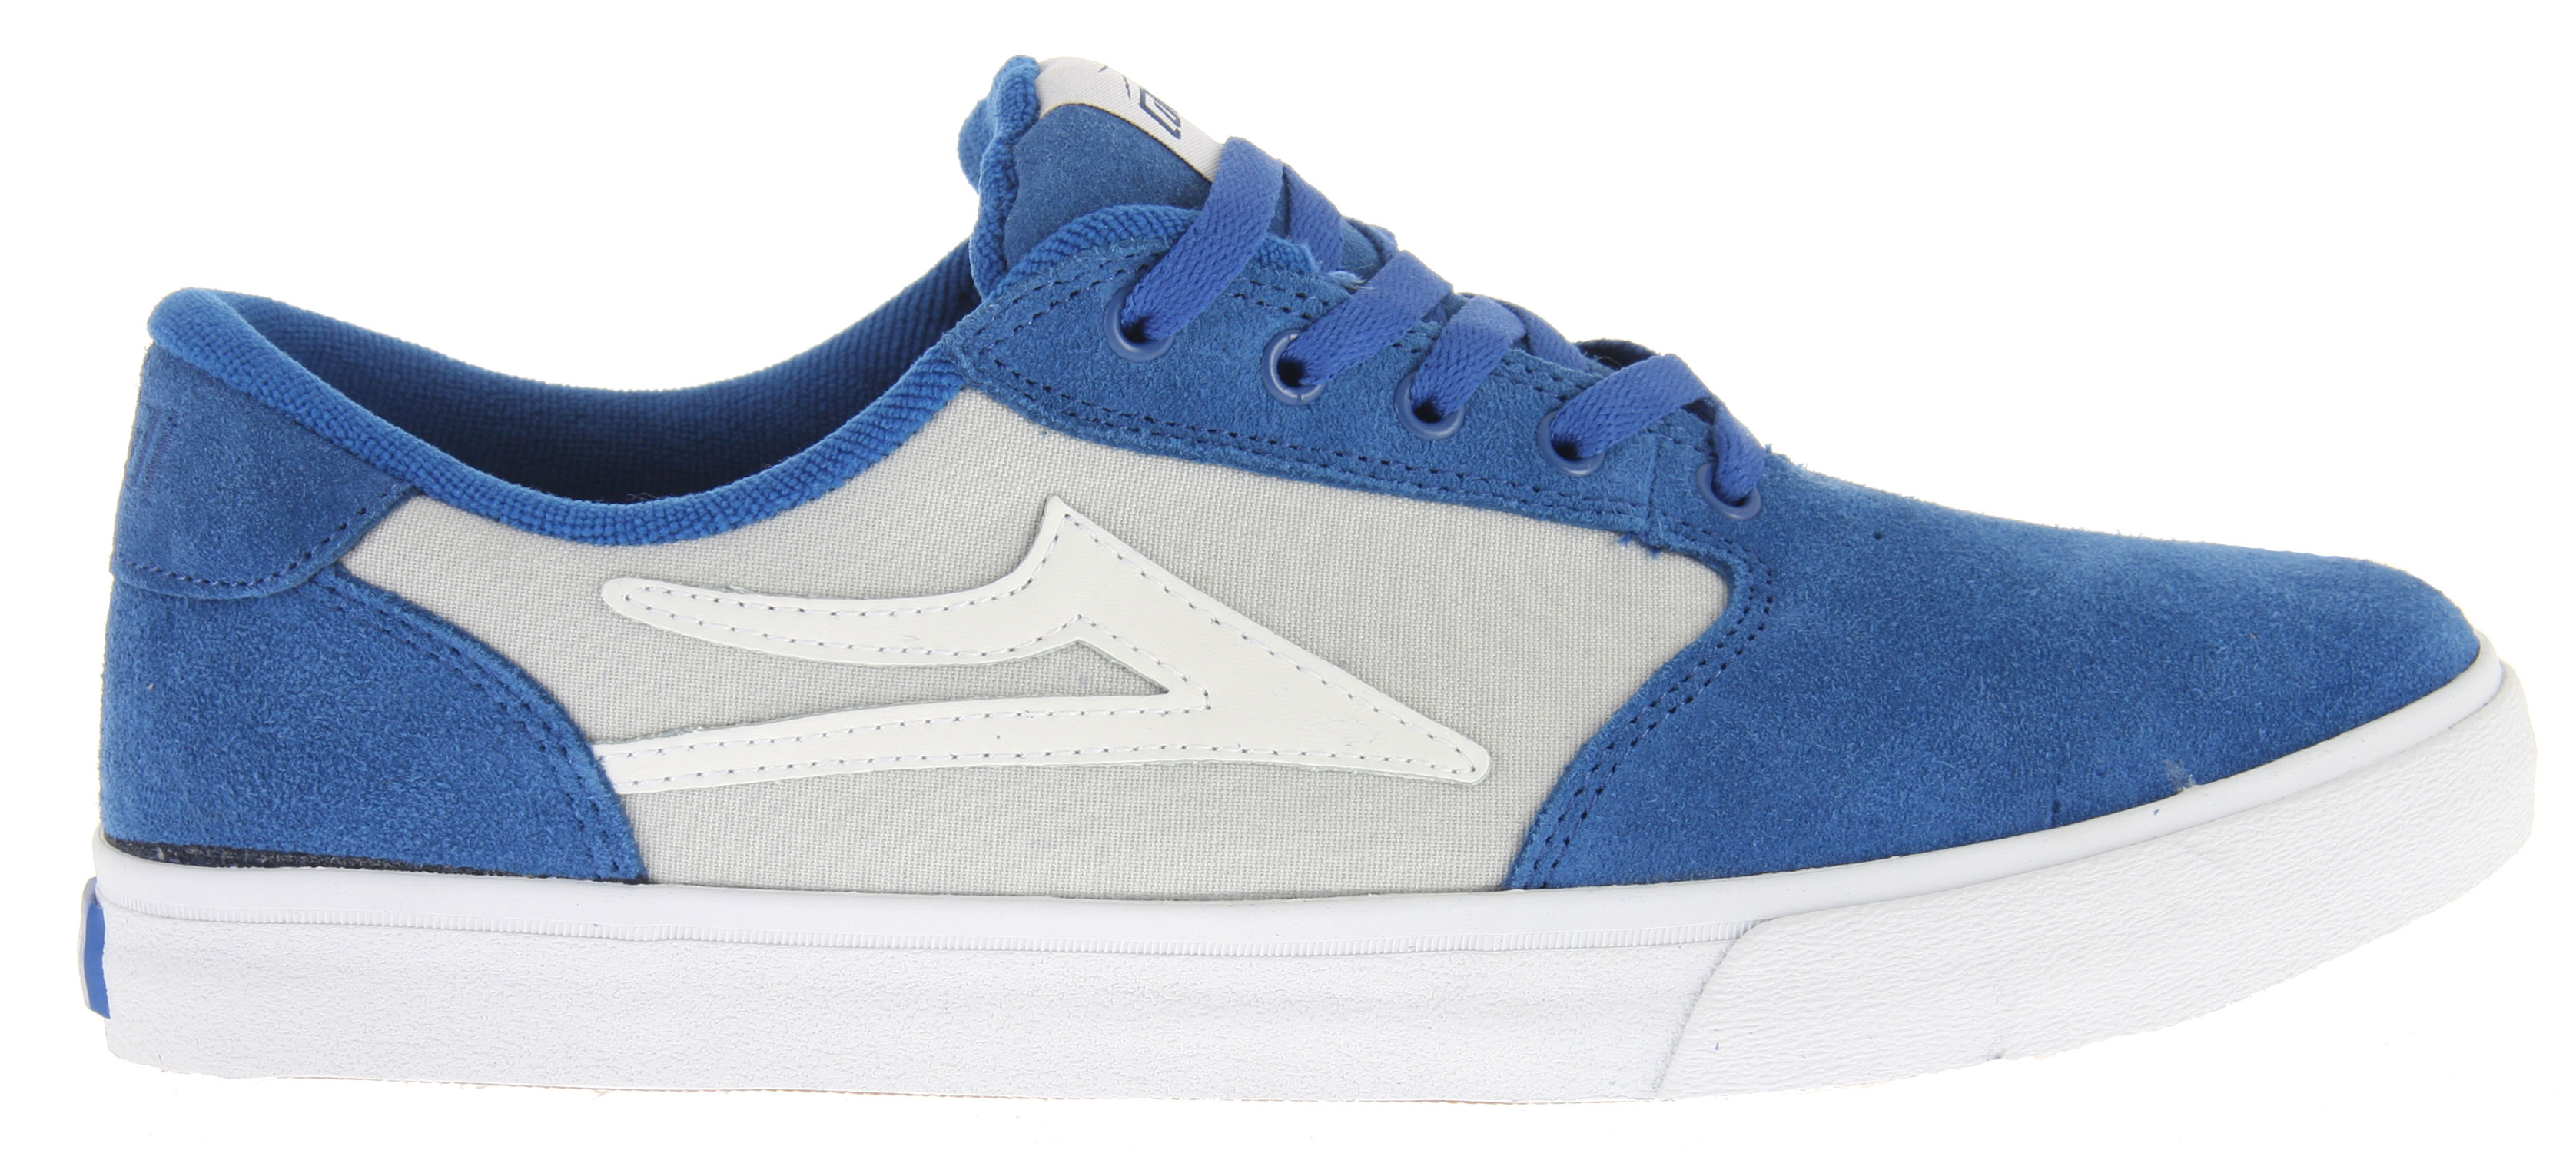 Skateboard Key Features of the Lakai Pico Skate Shoes: Flexible Vulcanized Construction Soft & Tacky Gum Rubber Outsole Durable Suede & Canvas Upper Form-Fitting Upper For Increased Board Feel Full-Length Shock Absorbing Insole - $35.95